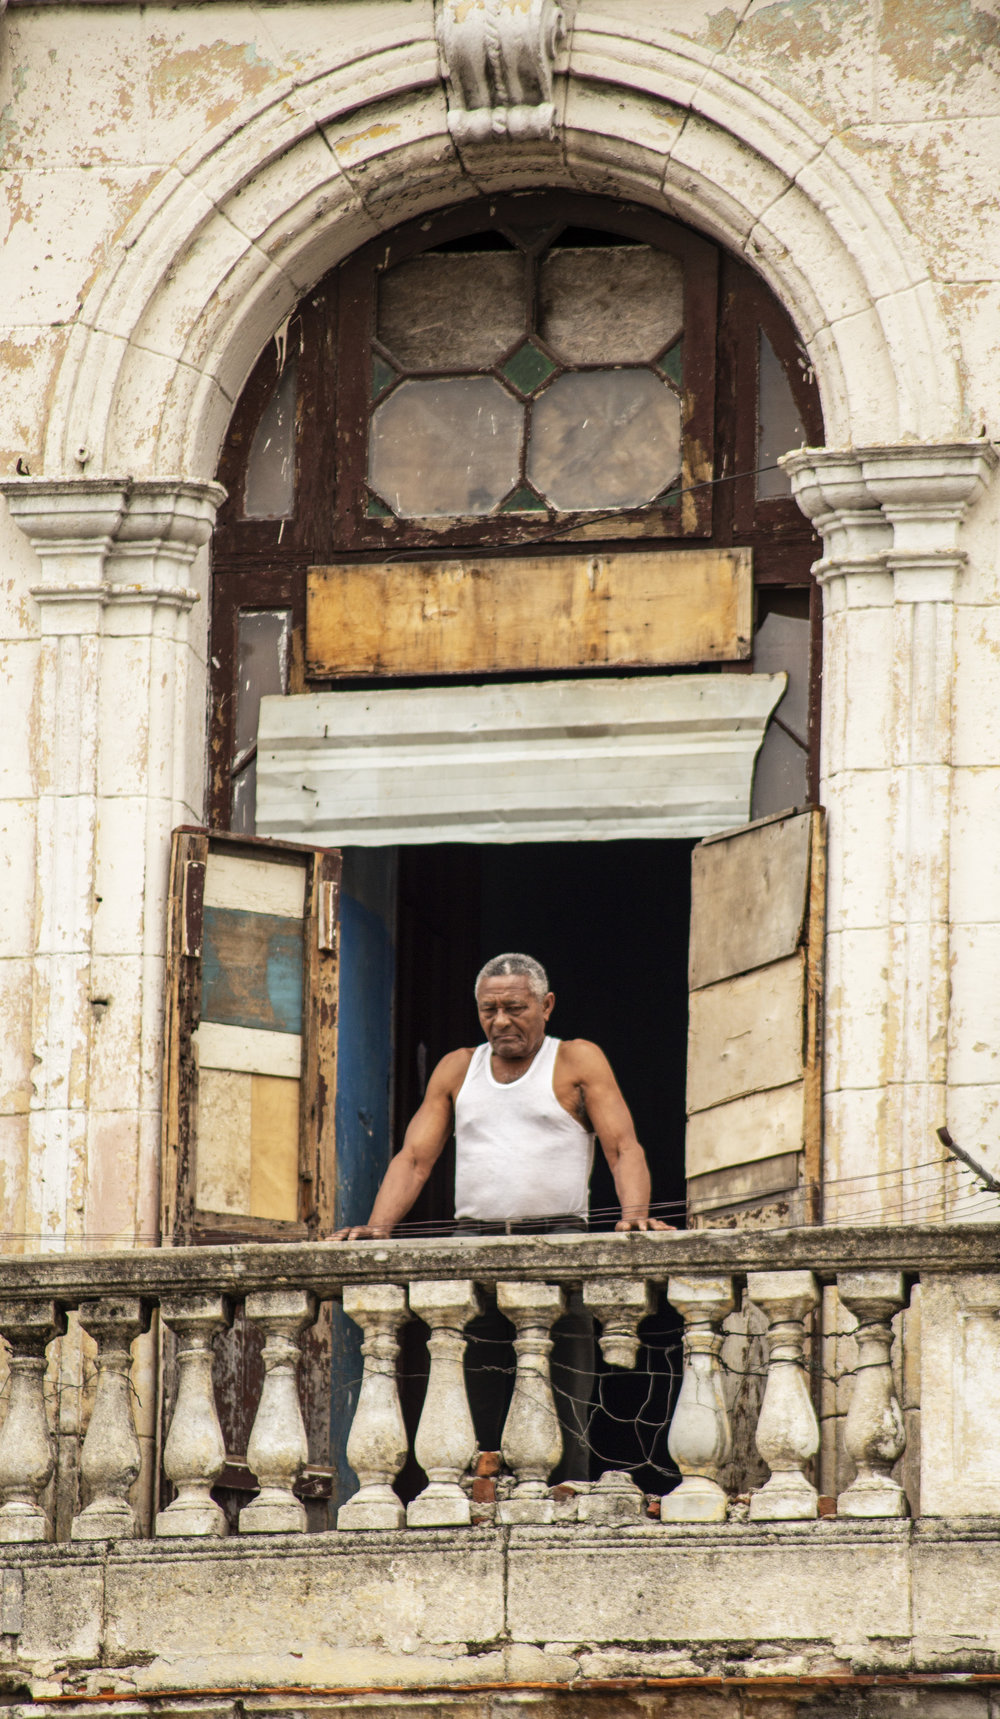 Man on the Balcony  - The photo was taken in Havana. The balcony is a glimpse of how opulent this building might have been...